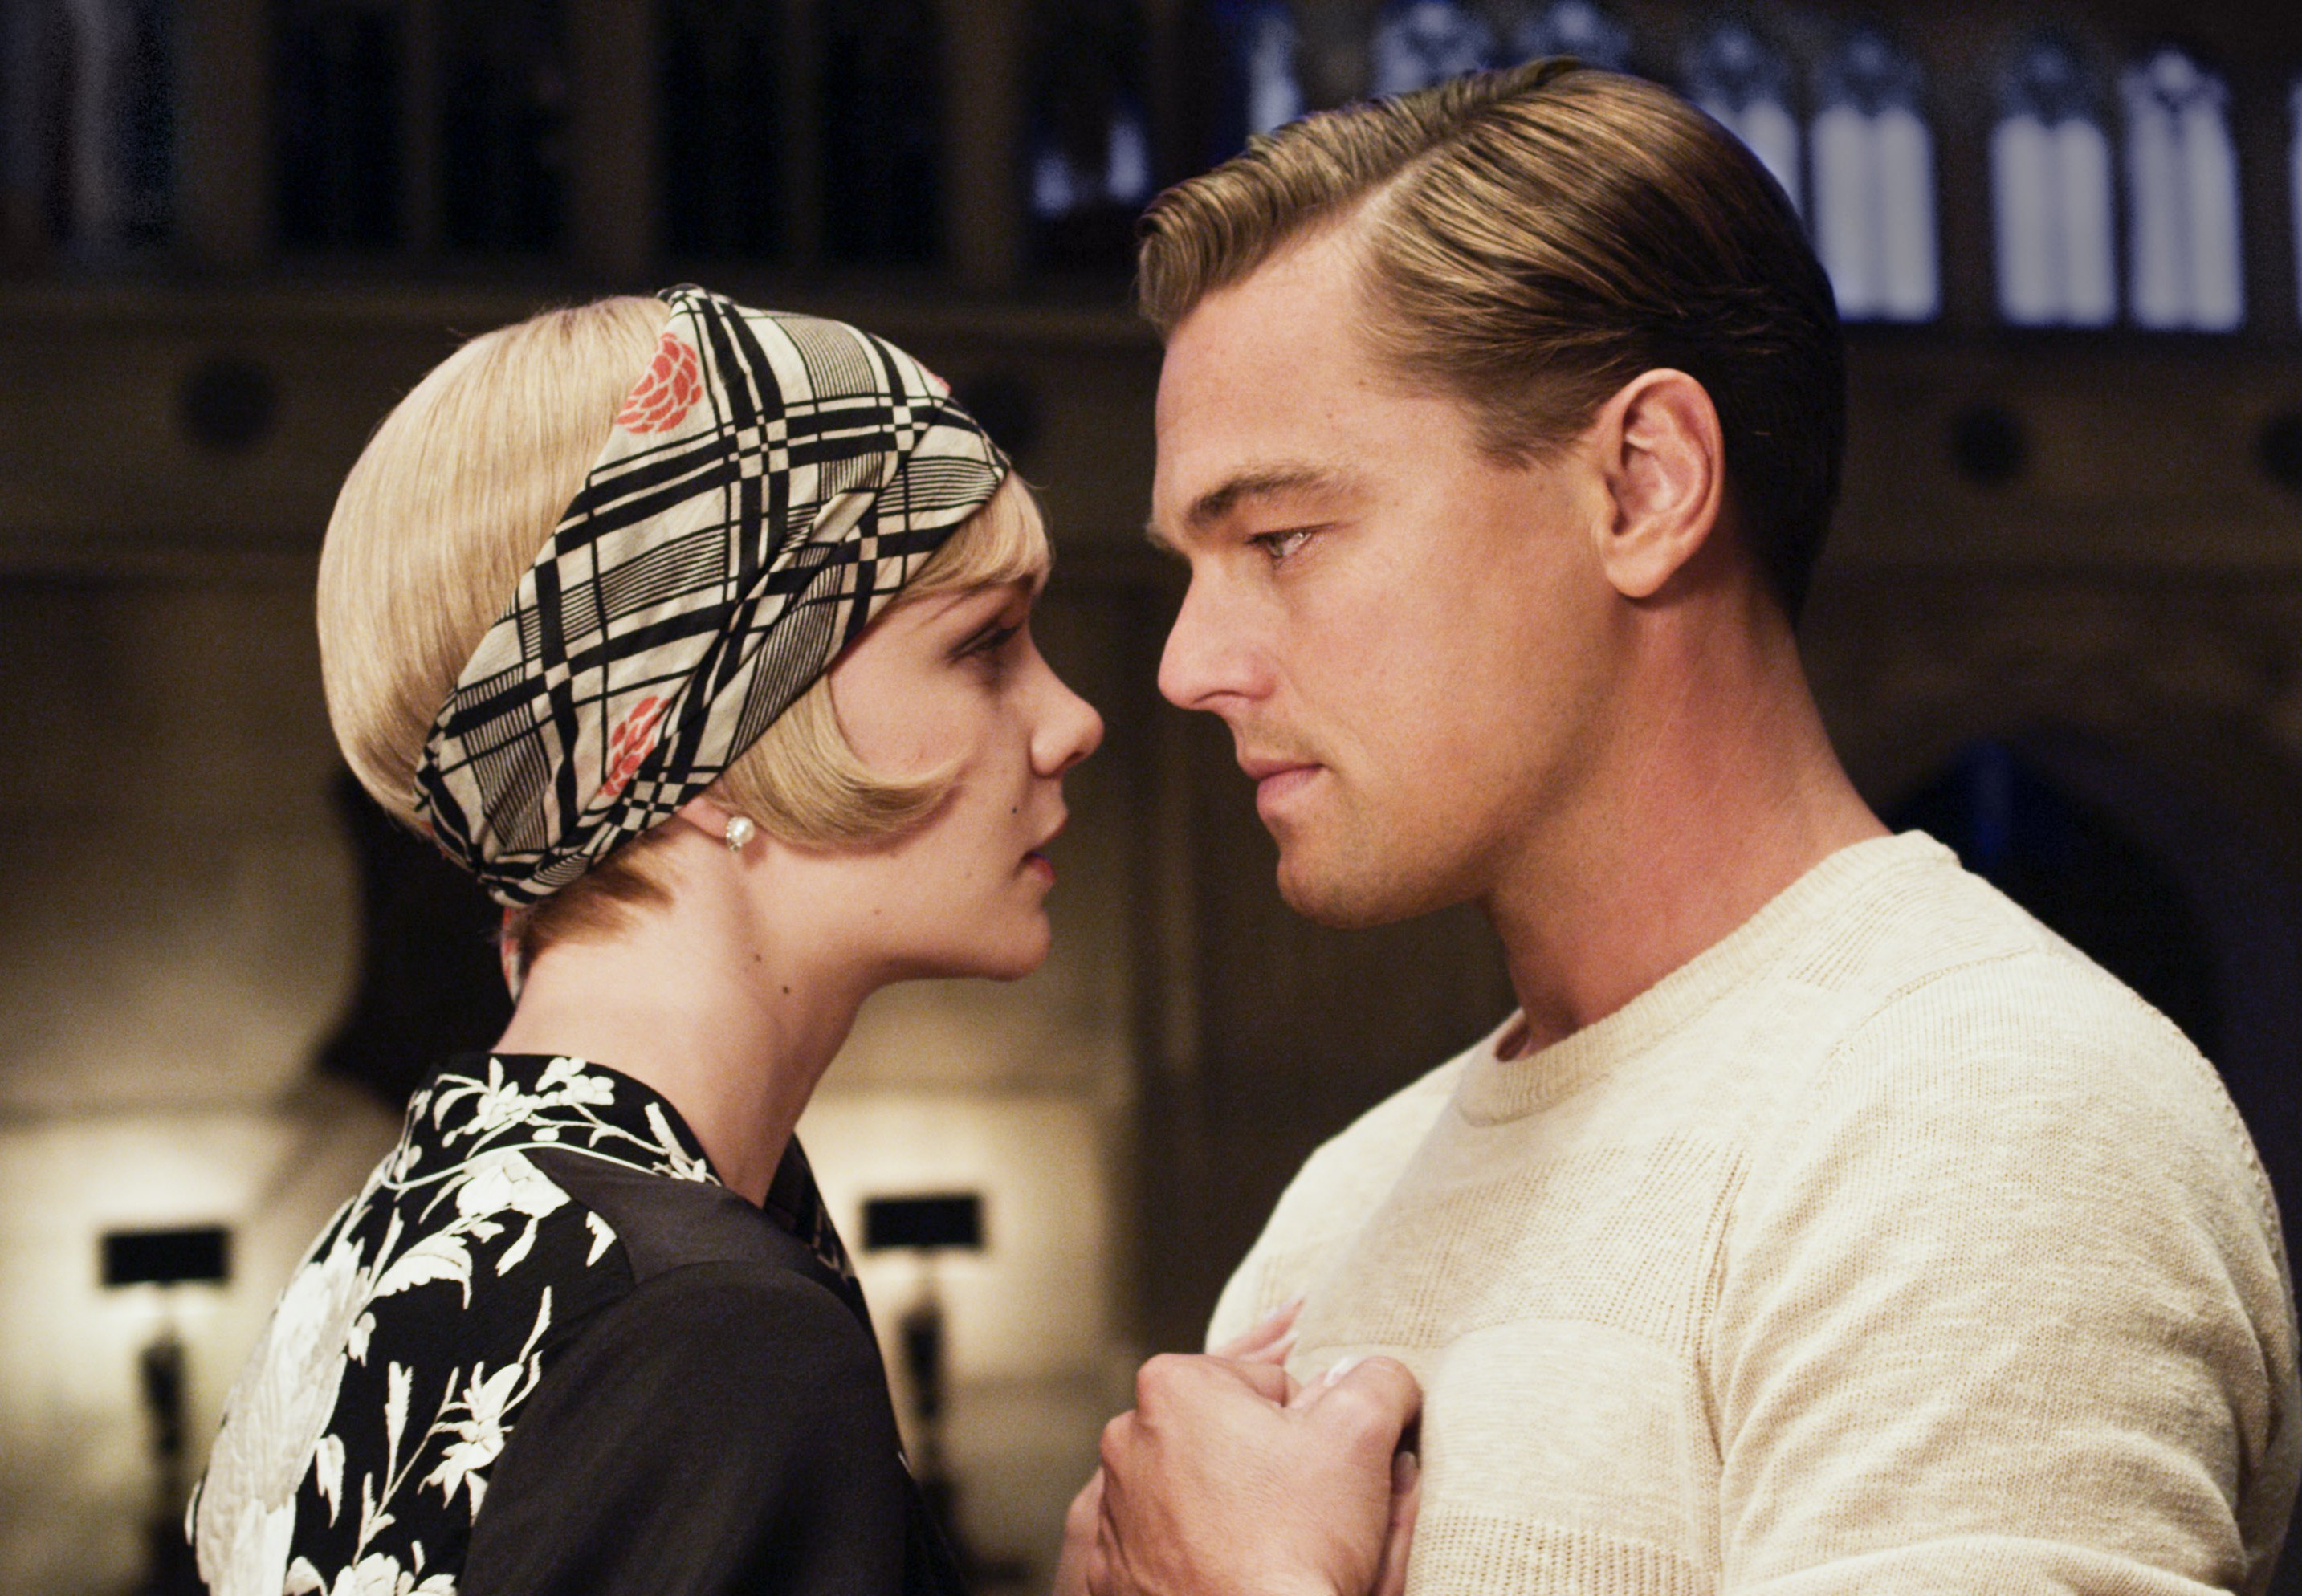 The New Great Gatsby Trailer is as Dramatic and Exciting as We Hoped It Would Be